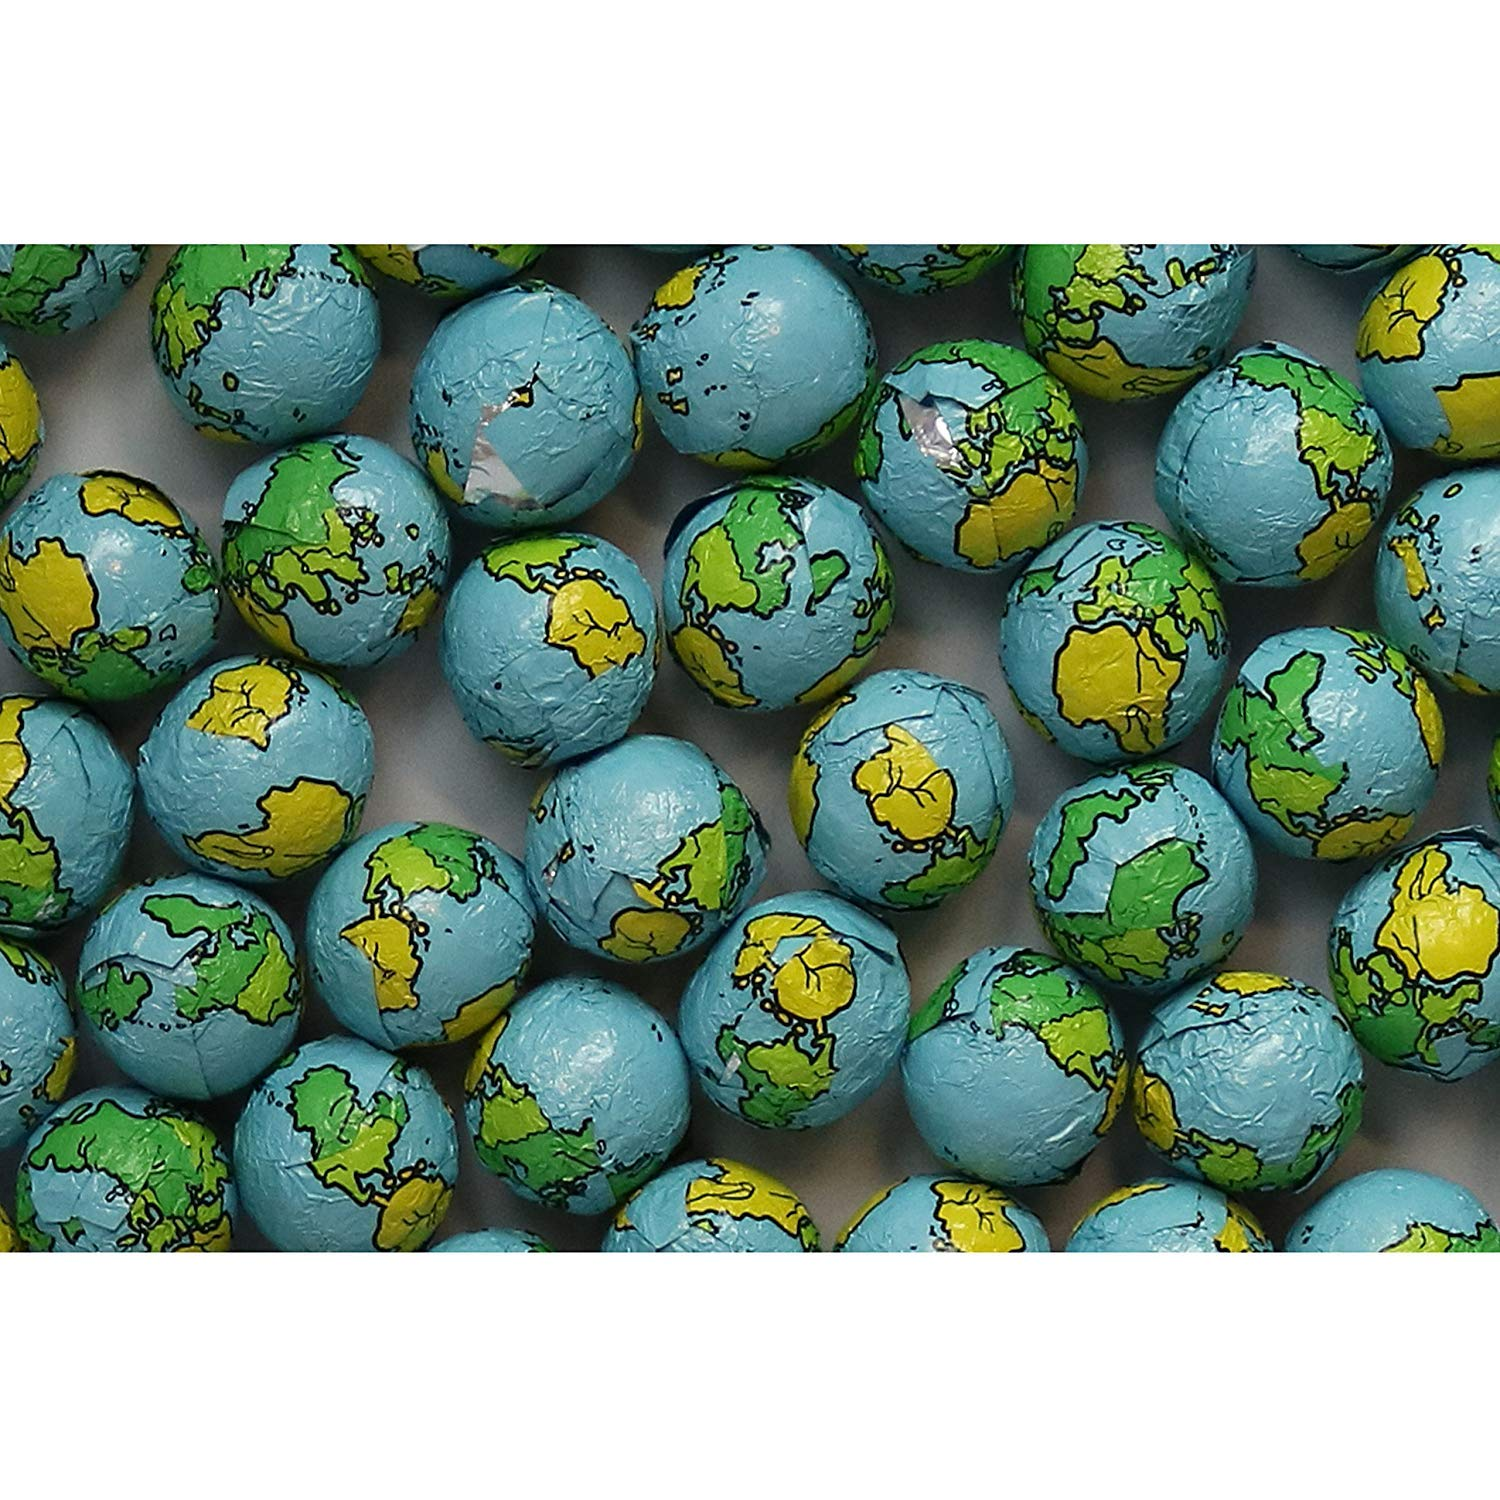 FirstChoiceCandy World Globe Foiled Chocolate Earth Balls 2 Pound Resealable Bag